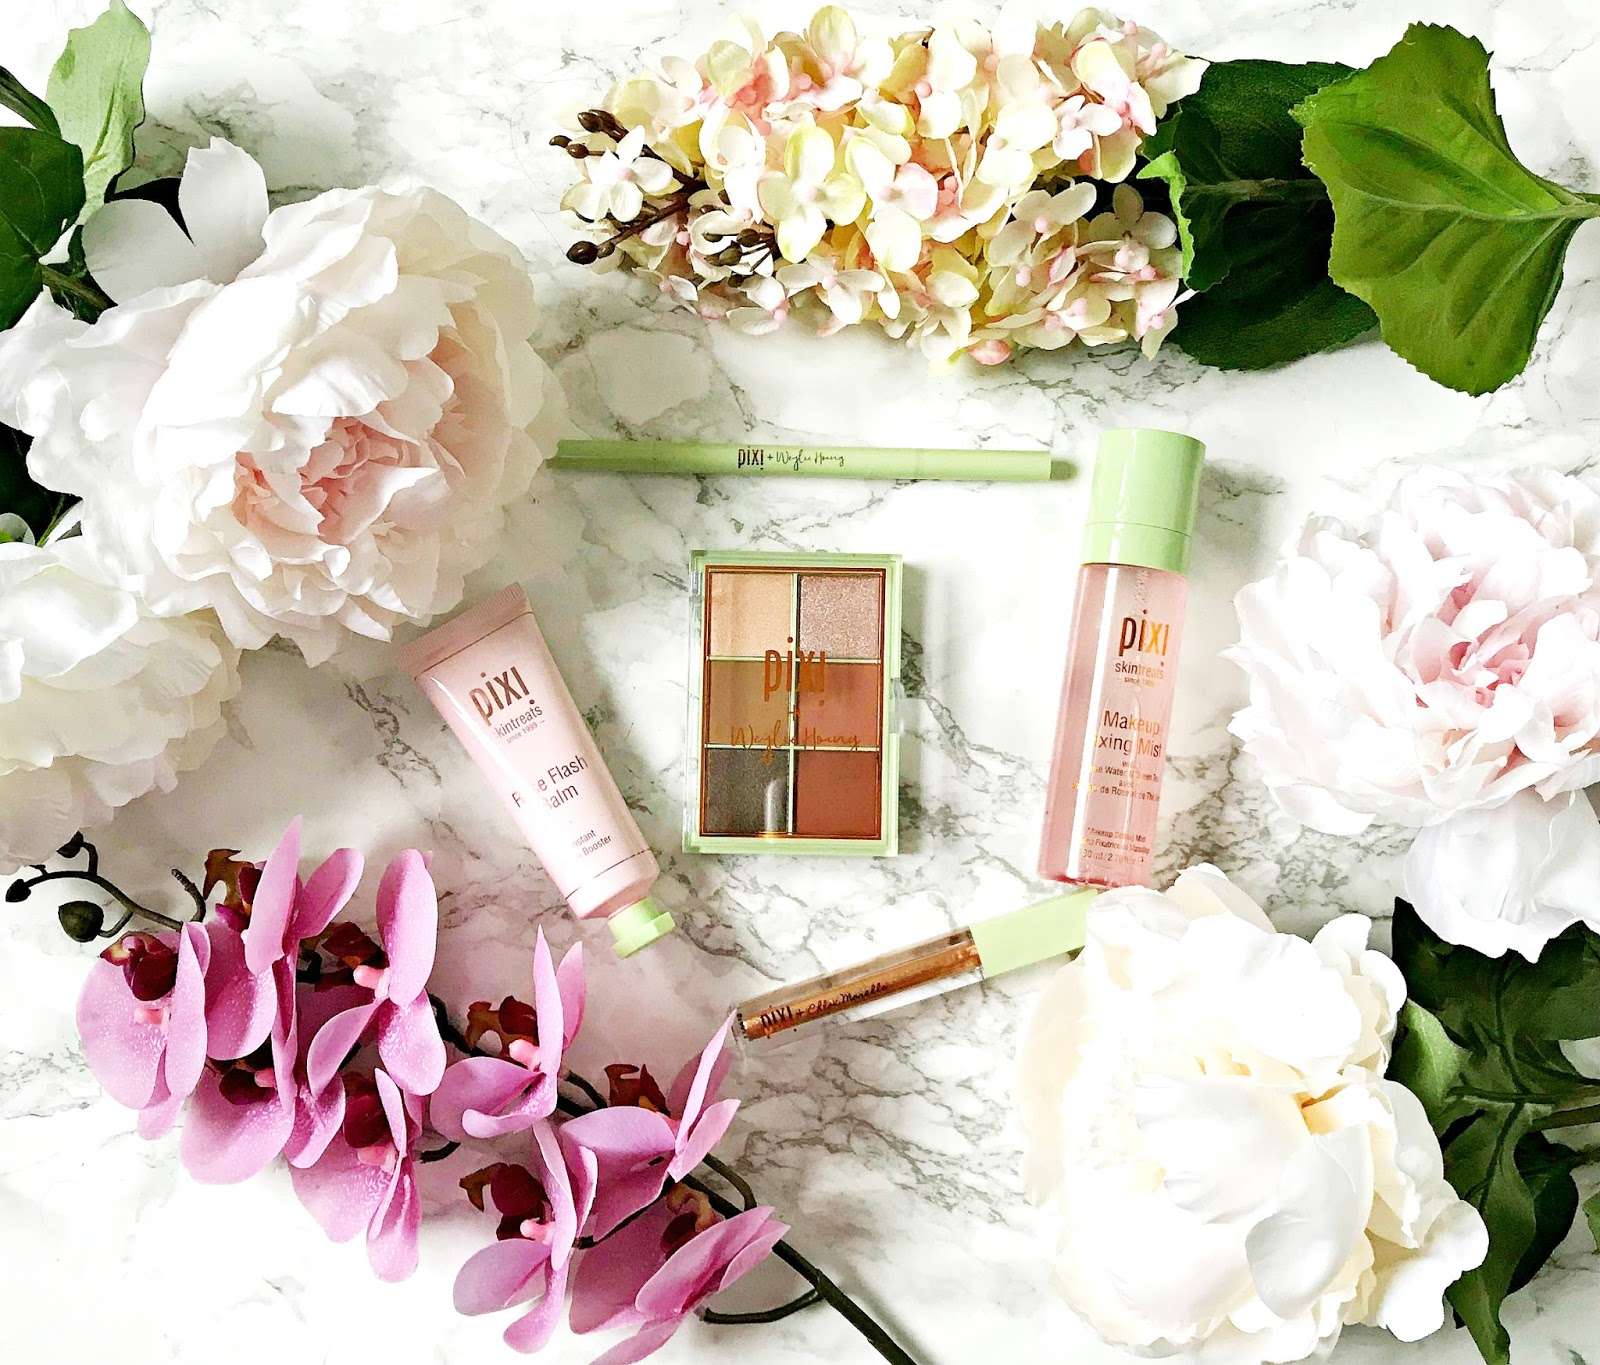 Pixi Makeup Top Five